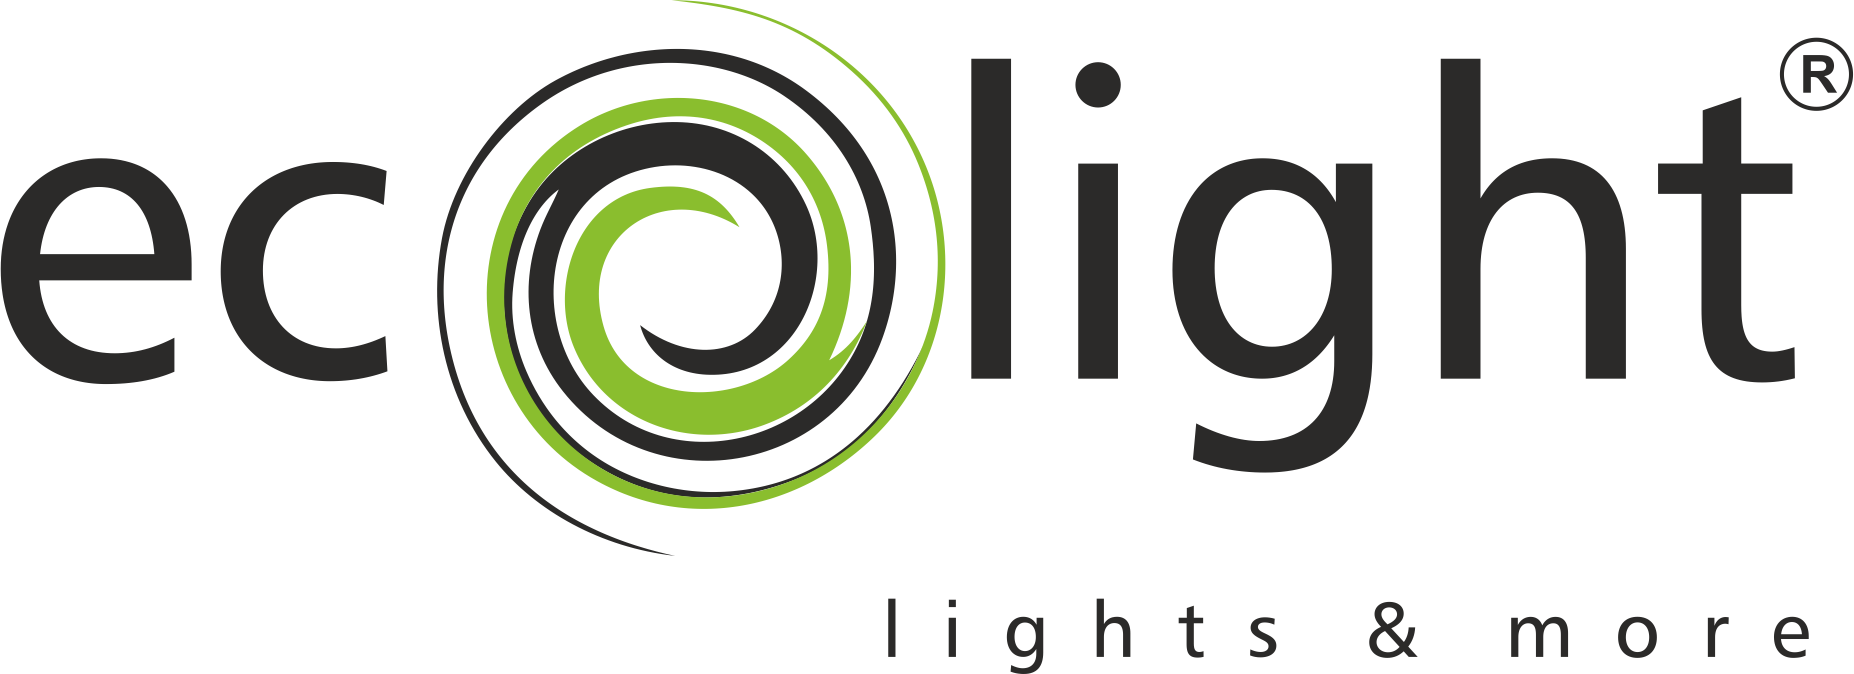 Eco Light - light&more